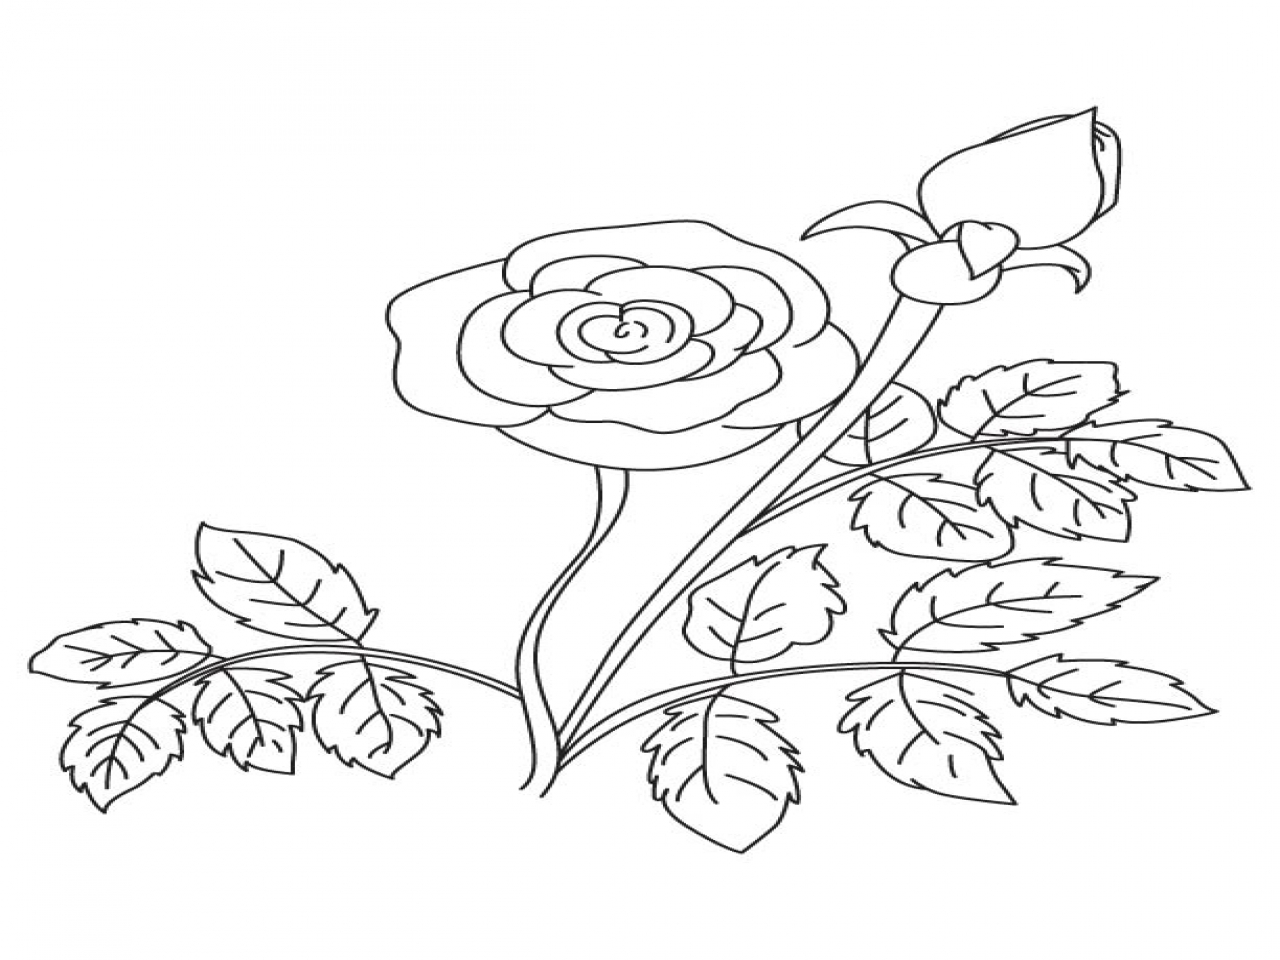 1280x960 Bud Coloring Pages Rose And Page For Kids Best